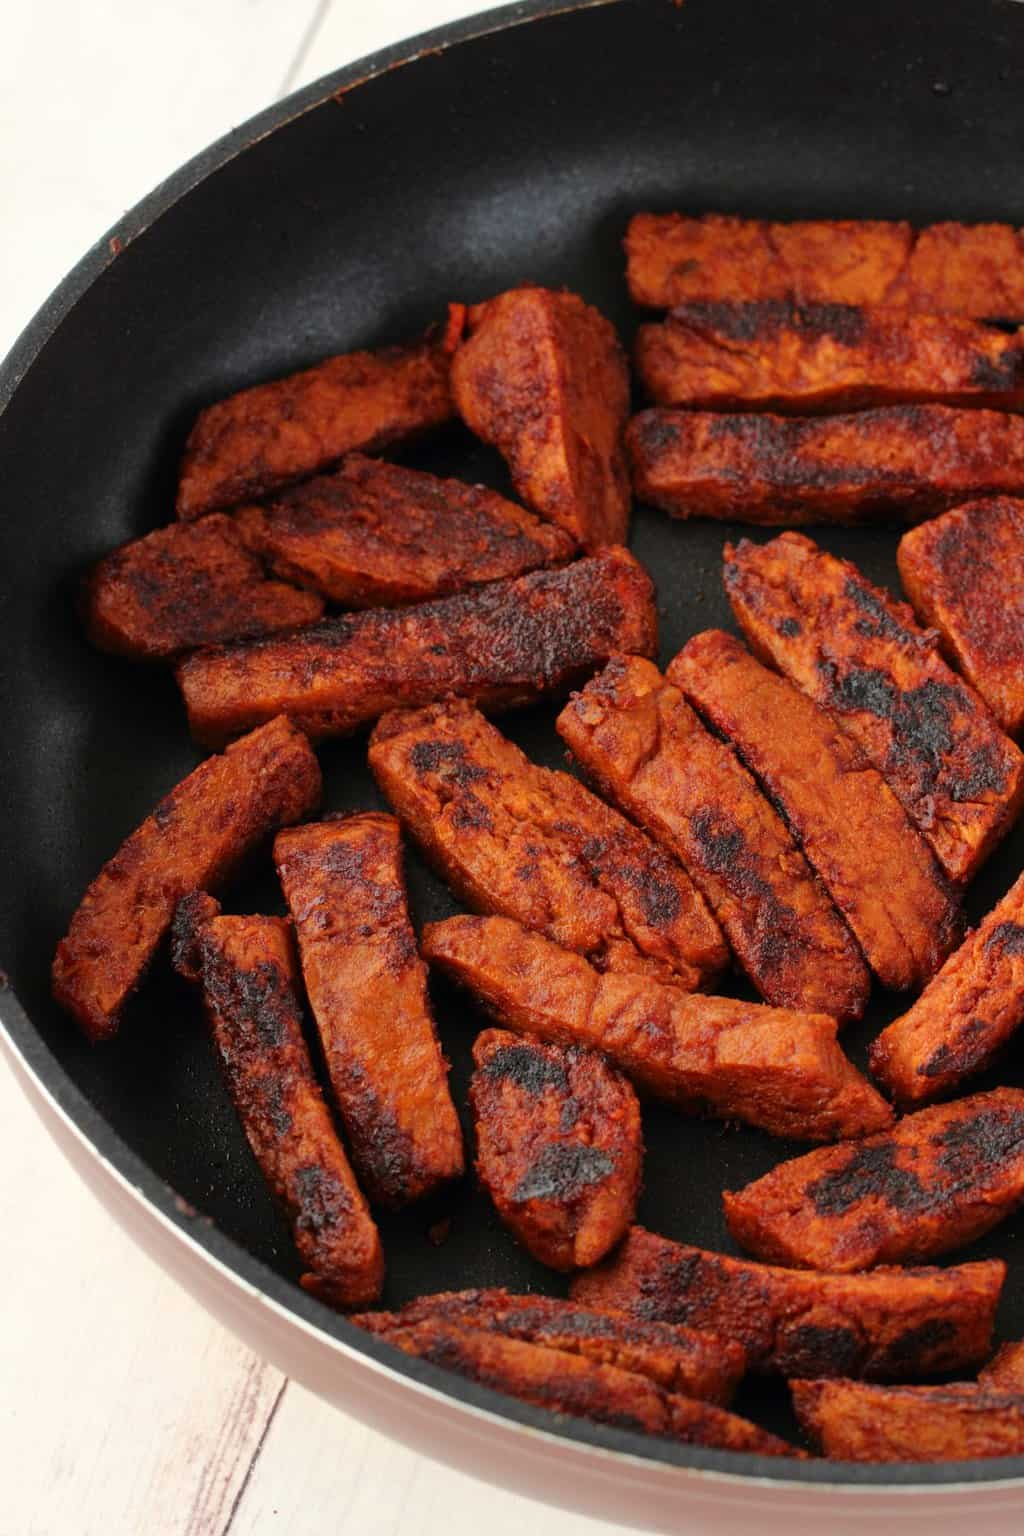 Strips of cooked seitan for vegan shawarmas in a frying pan.